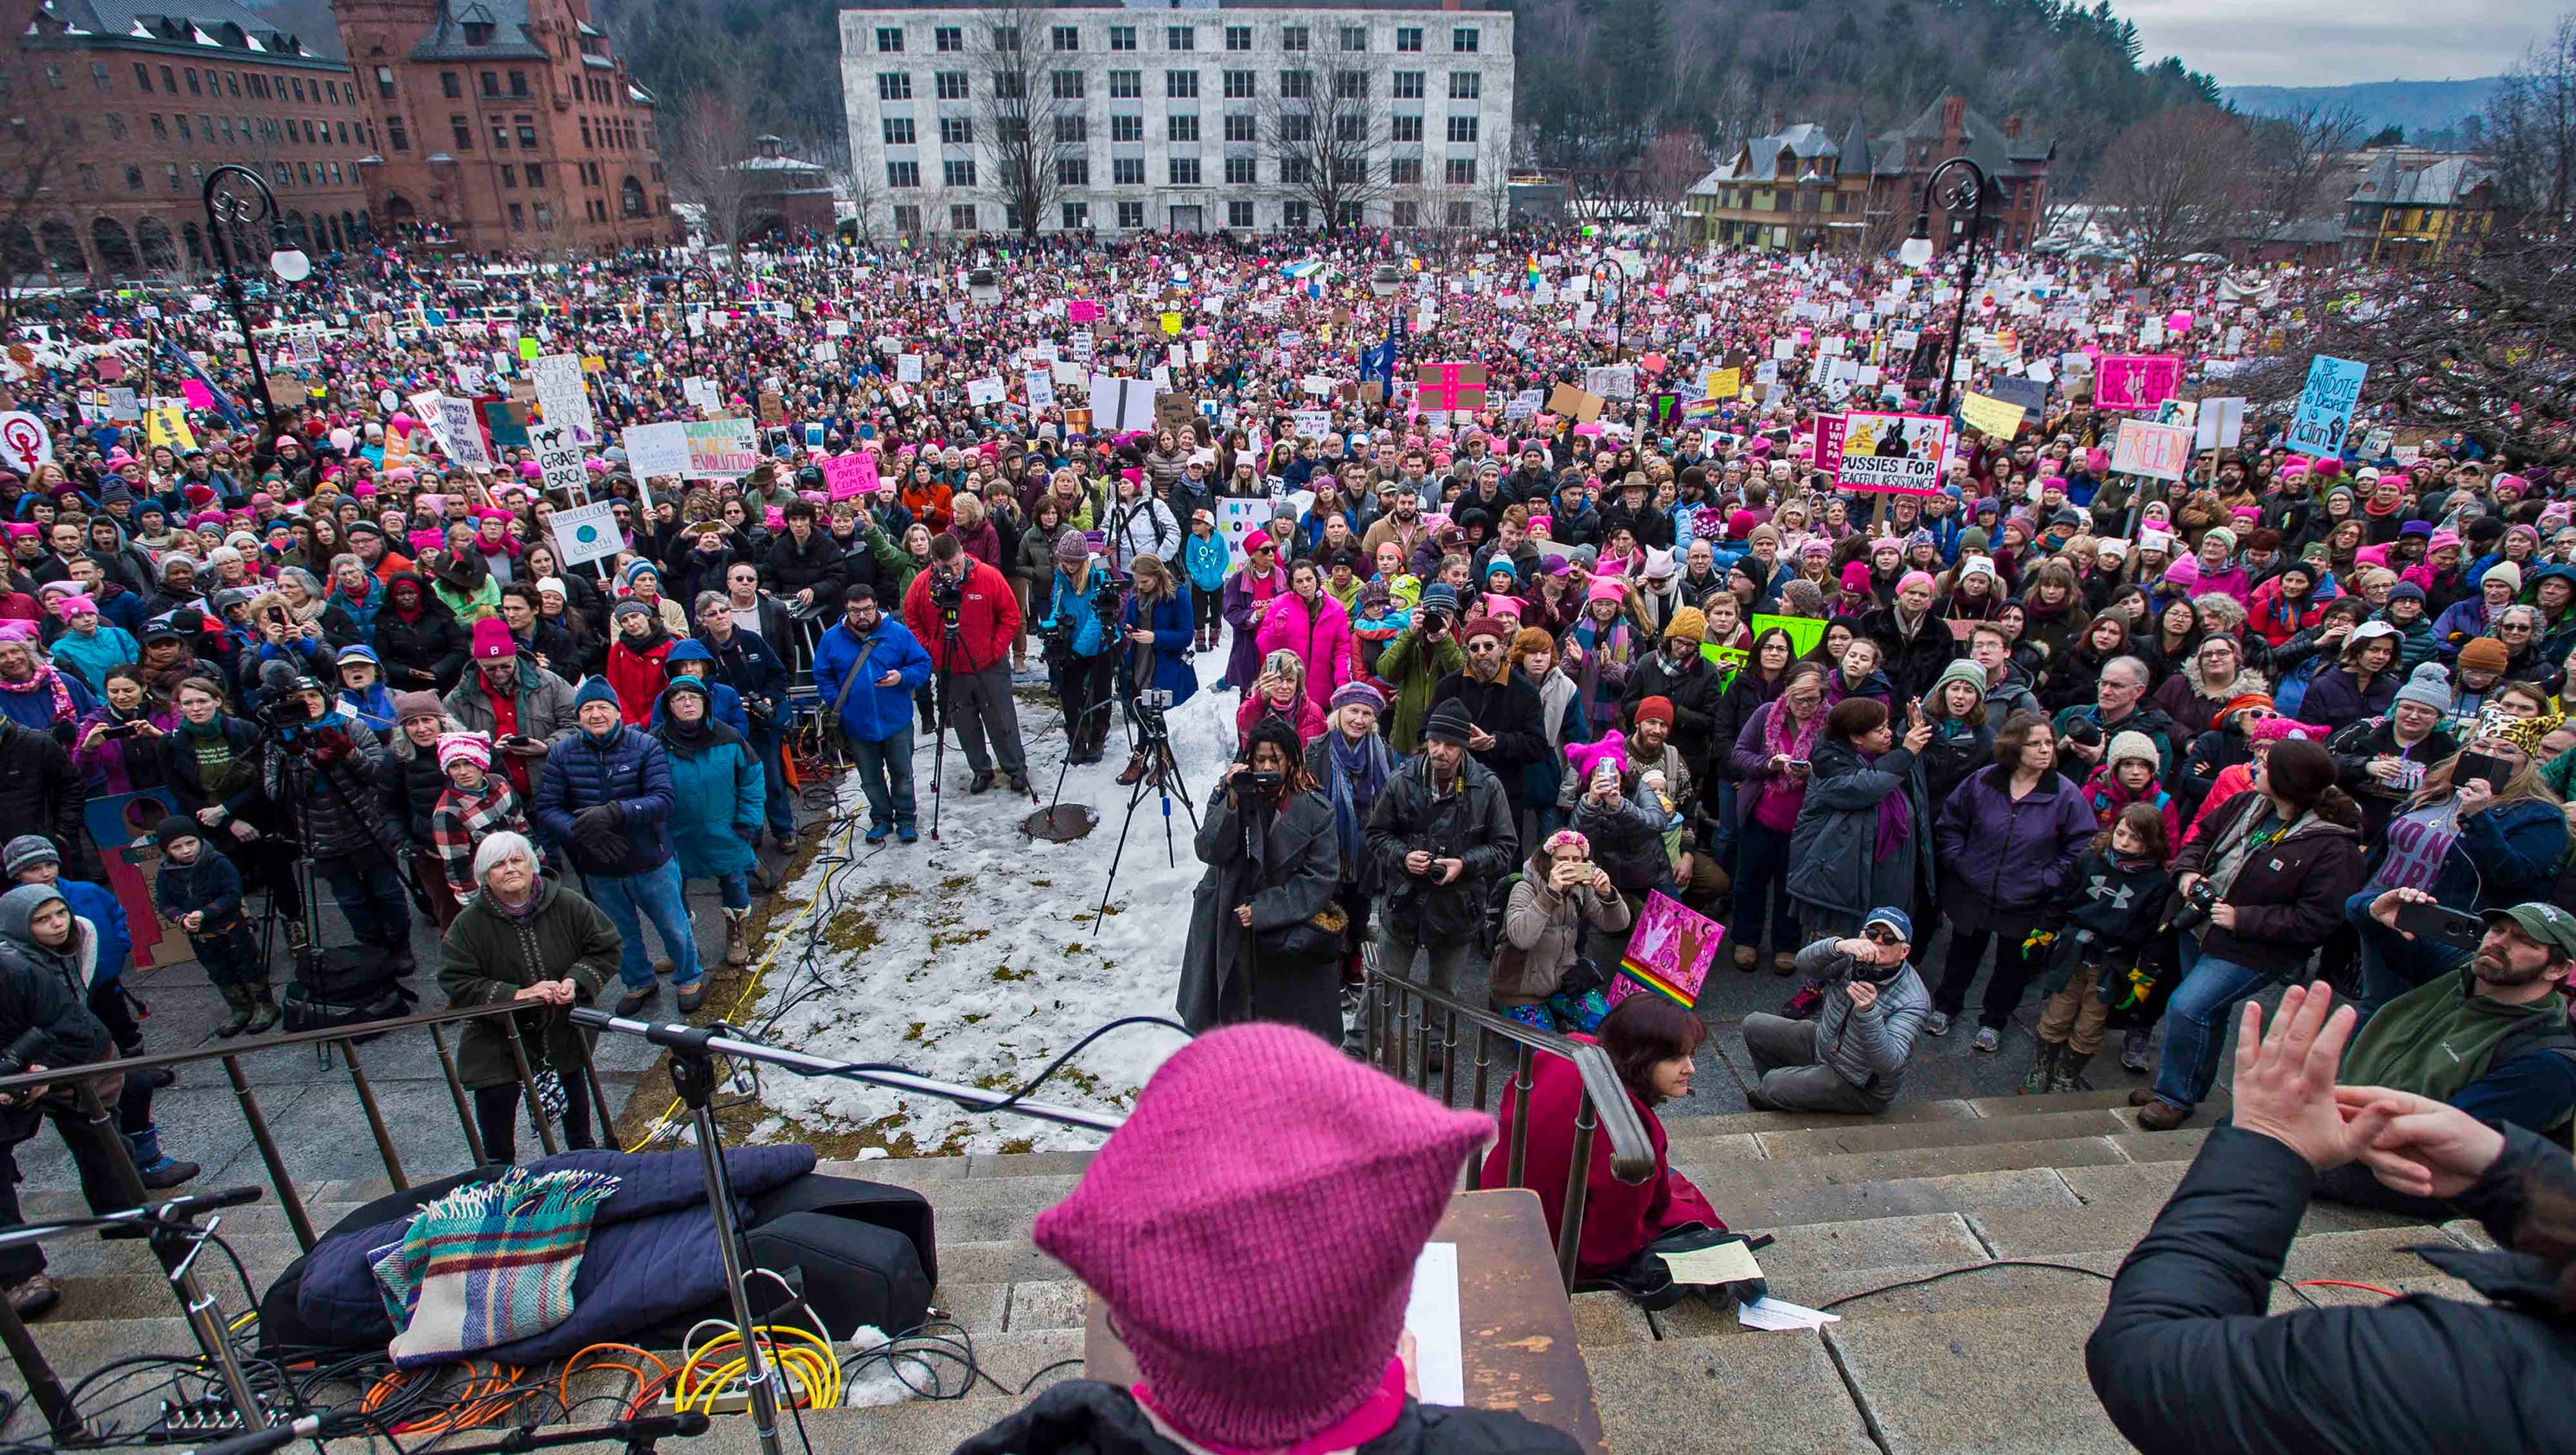 montpelier women Check out our official website to sign up for updates, get answers to your questions, and for the most recent information about the women's march & unity rally: http:// womensmarchonmontpeliervto rg.